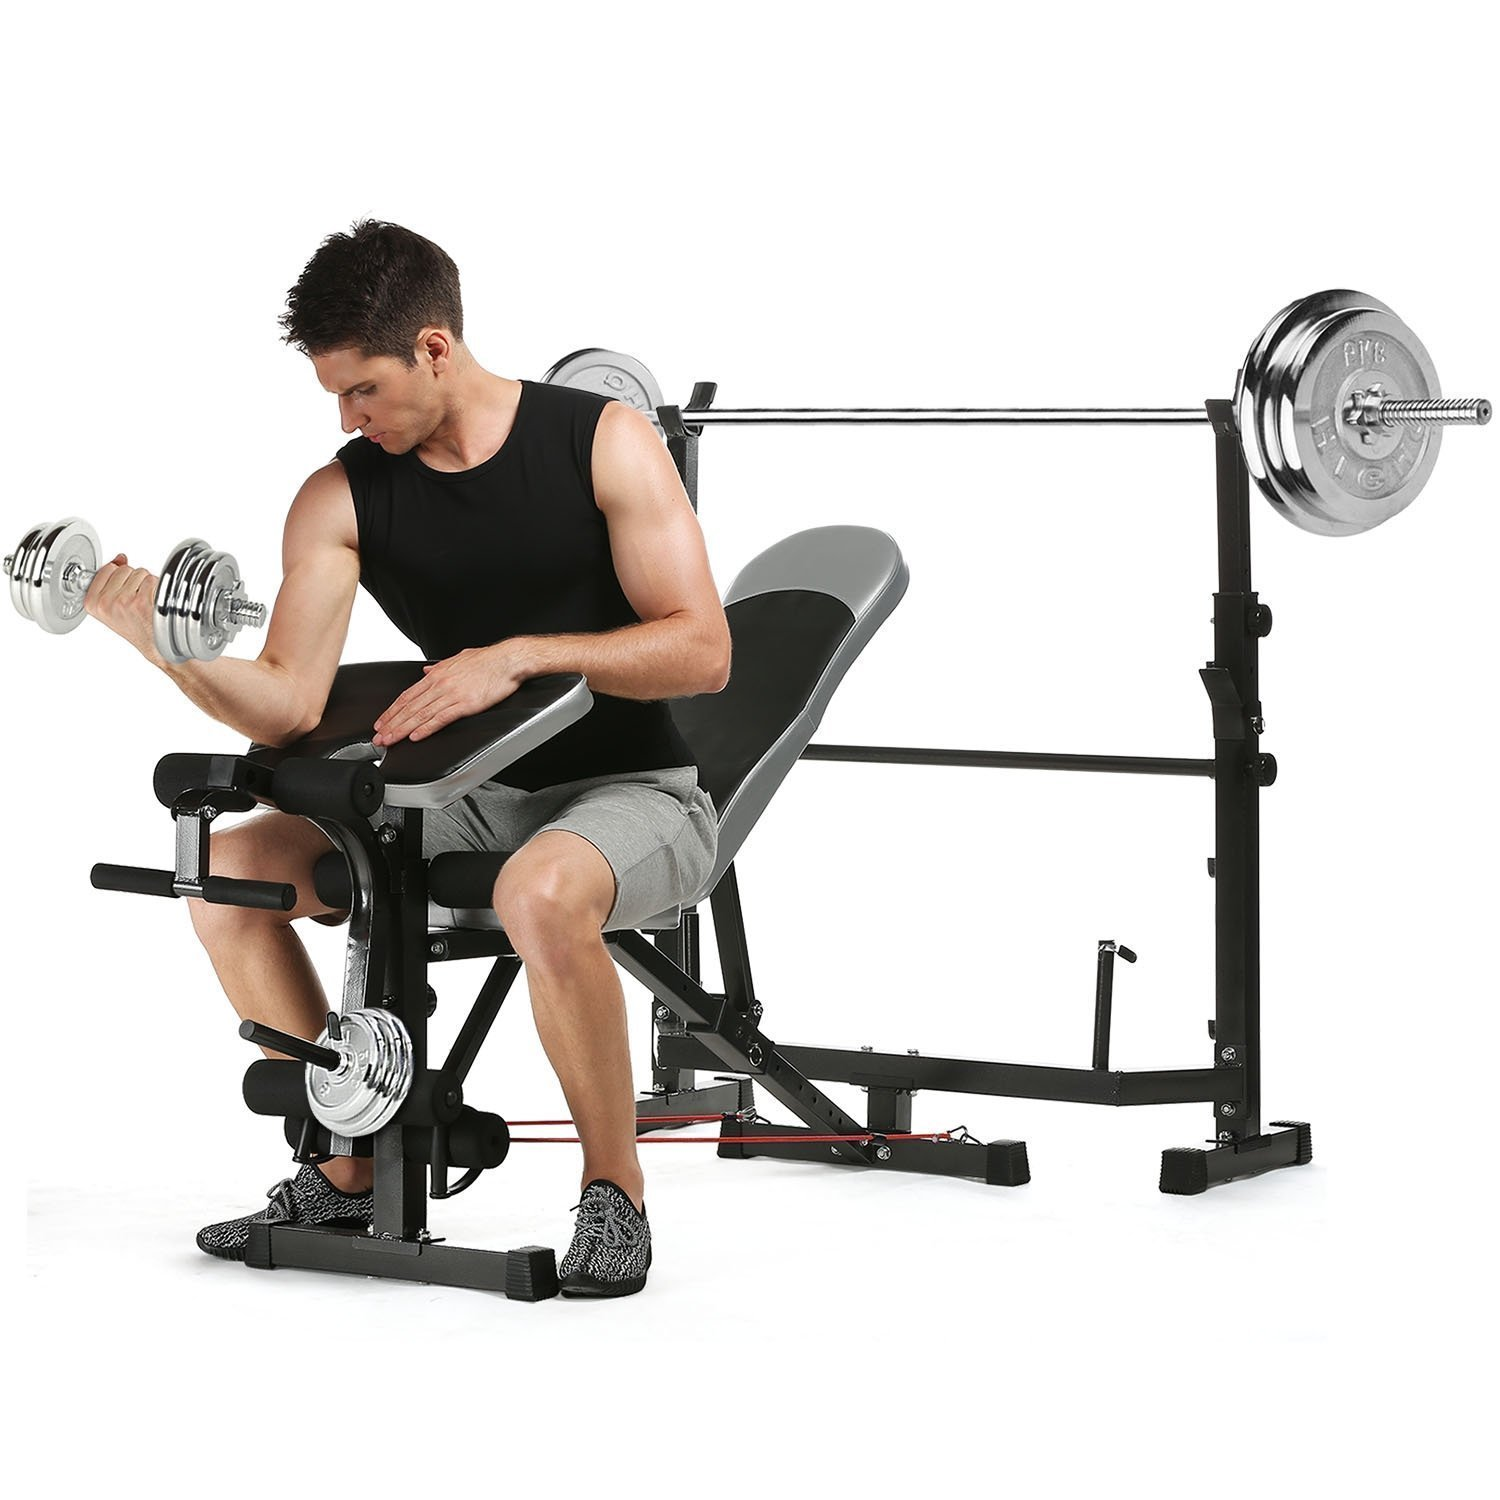 Multi-Functional Olympic Weight Bench Height Adjustable Squat Rack for Indoor Exercise(US STOCK)